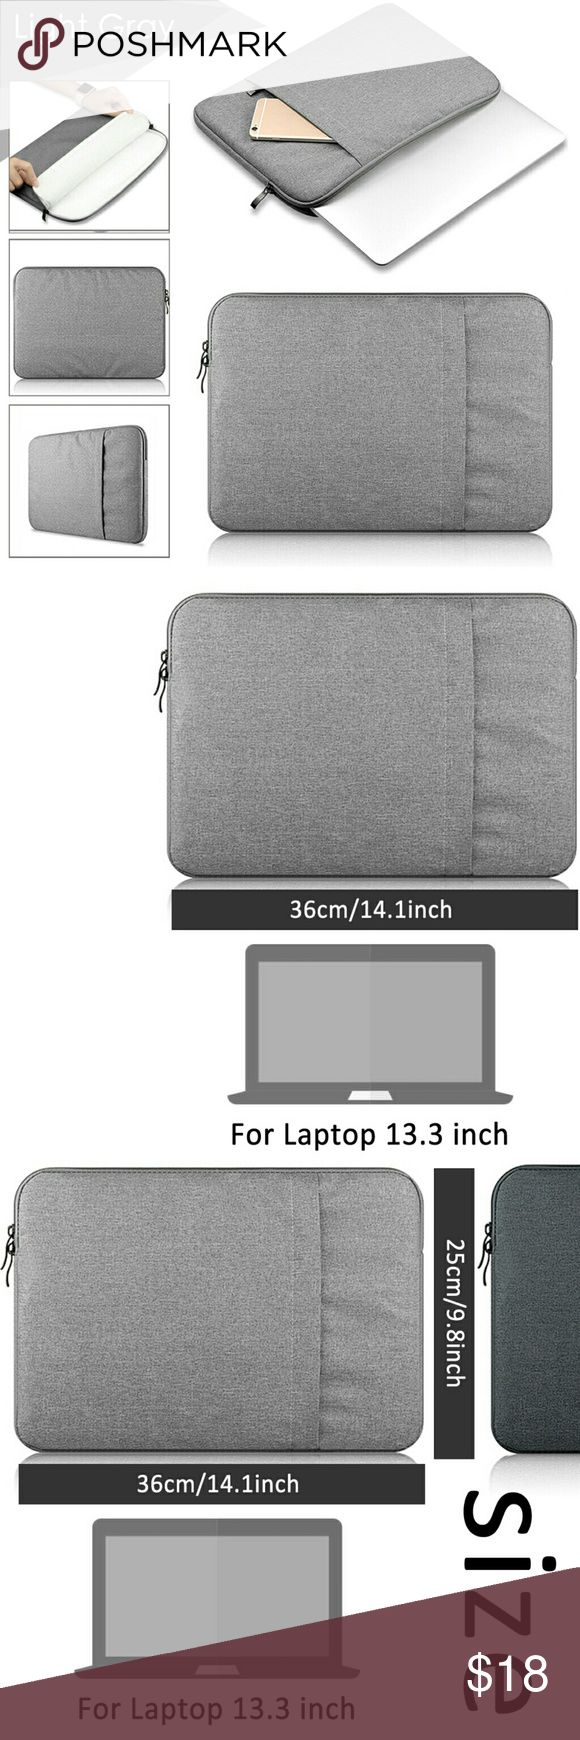 """13.3"""" MacBook Laptop Waterproof Case *BNIB* Compatibility all 13-13.3 inches laptop computers  - For Apple Macbook Pro 13.3-inch with Retina display, MacBook Air 13-inch, MacBook pro 13-inch / 13.3 inch Laptop  - Also Fits laptops with Display size 13-13.3-inch like: for MacBook, Samsung, HP, Acer, ASUS, Lenove, Dell, Toshiba, Sony and others   *ADDITIONAL SPECS IN PHOTO #8* MacBook Accessories Laptop Cases"""